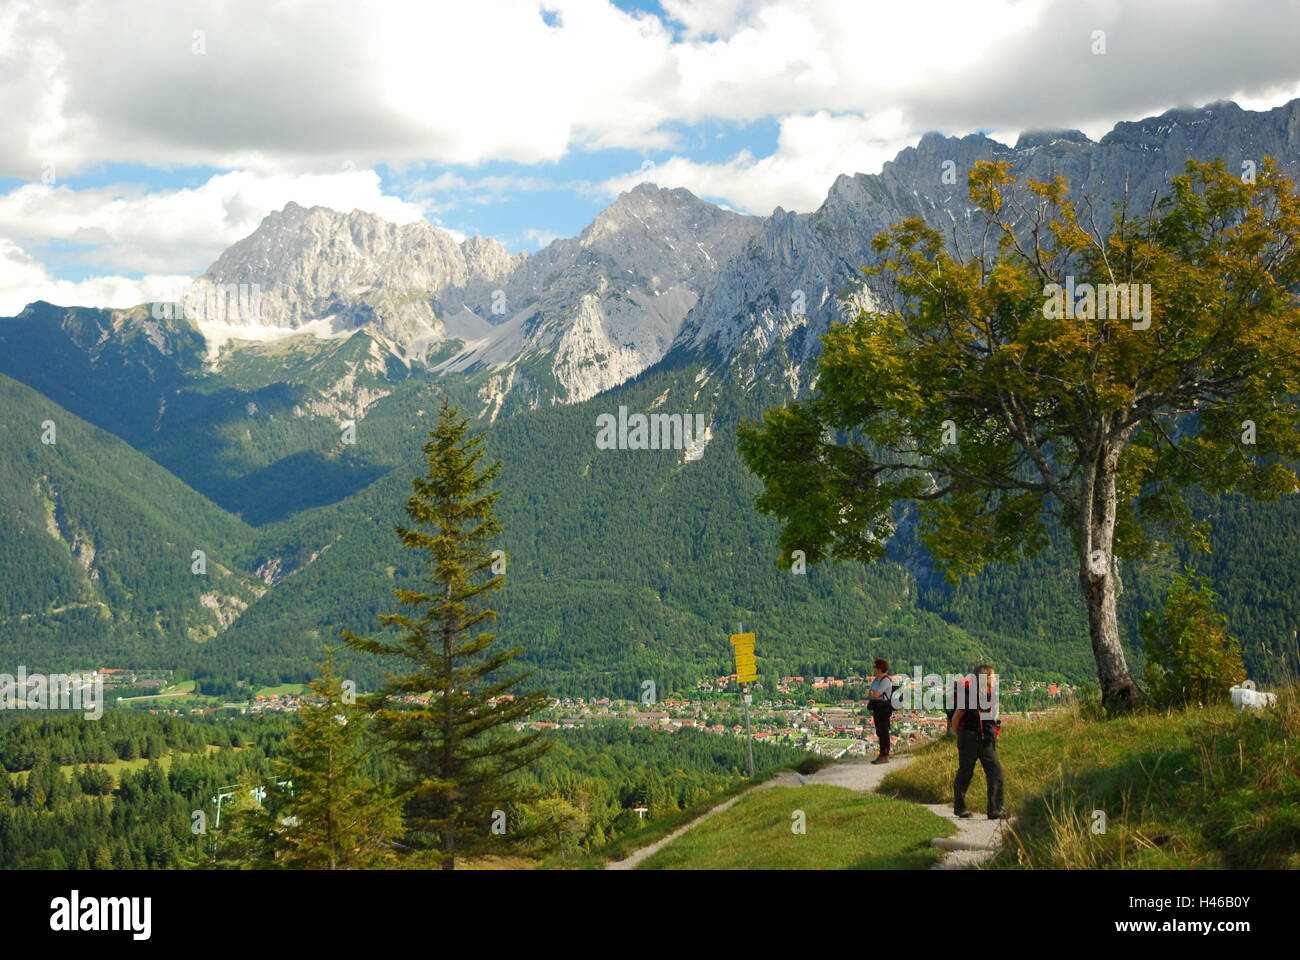 Germany, Bavaria, Mittenwald, Kranzberg, footpaths, deep cirque point, - Stock Image